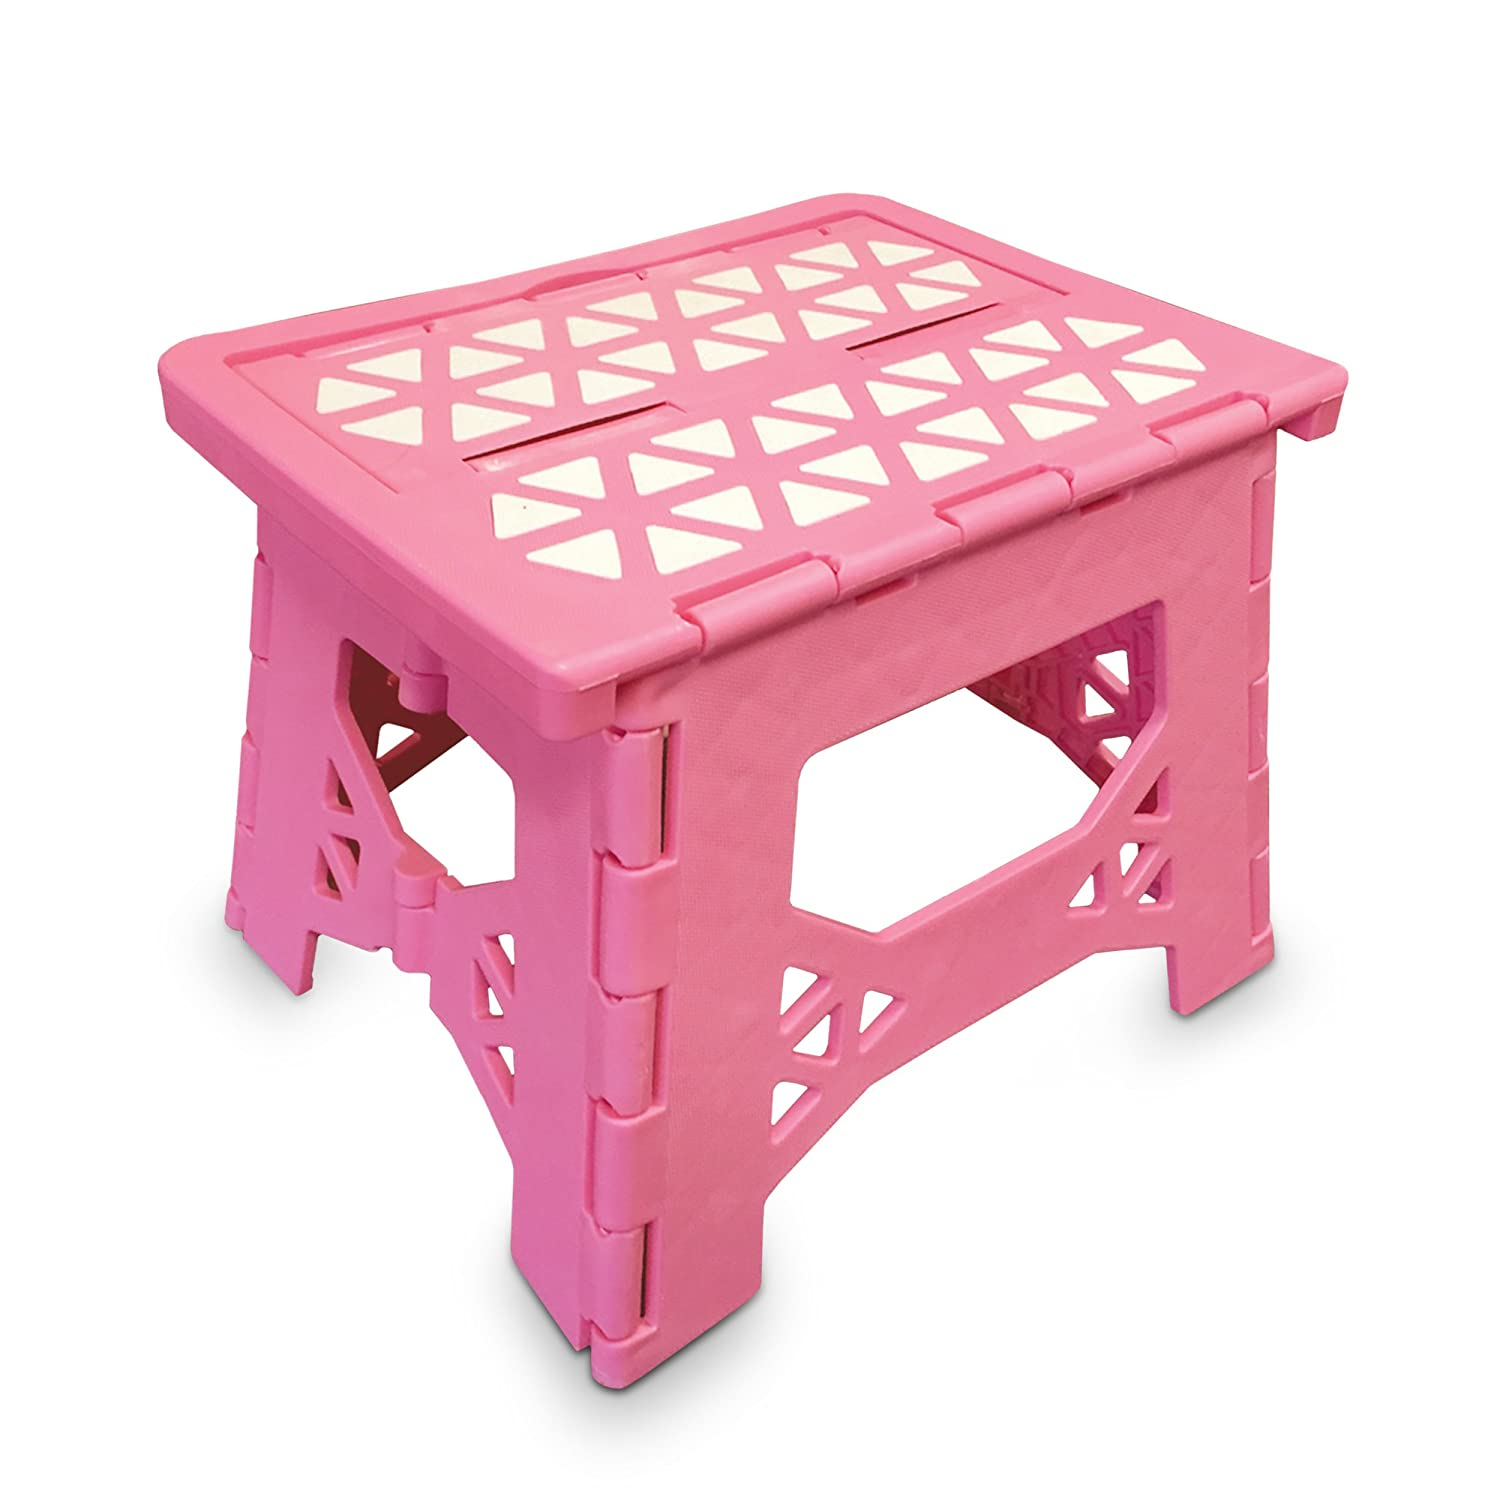 Bula Baby Folding Step Stool For Kids - New Safe Locking System and Non Slip Feet Grip - Pink